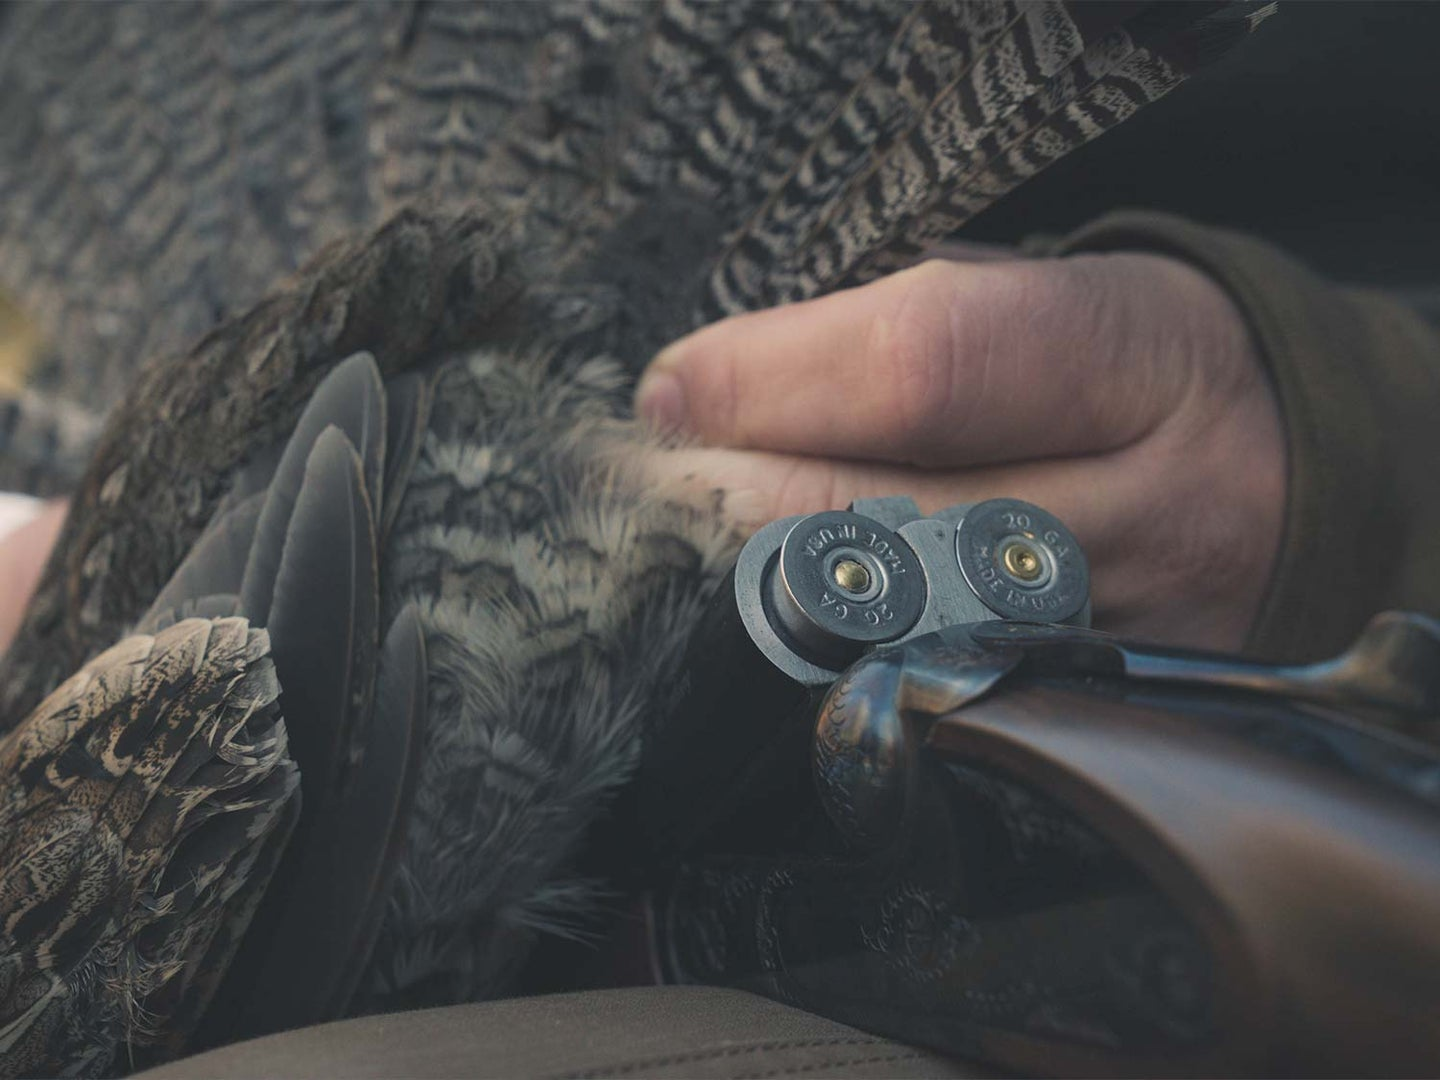 A hunter checks shotshells in a side-by-side shotgun next to a grouse.